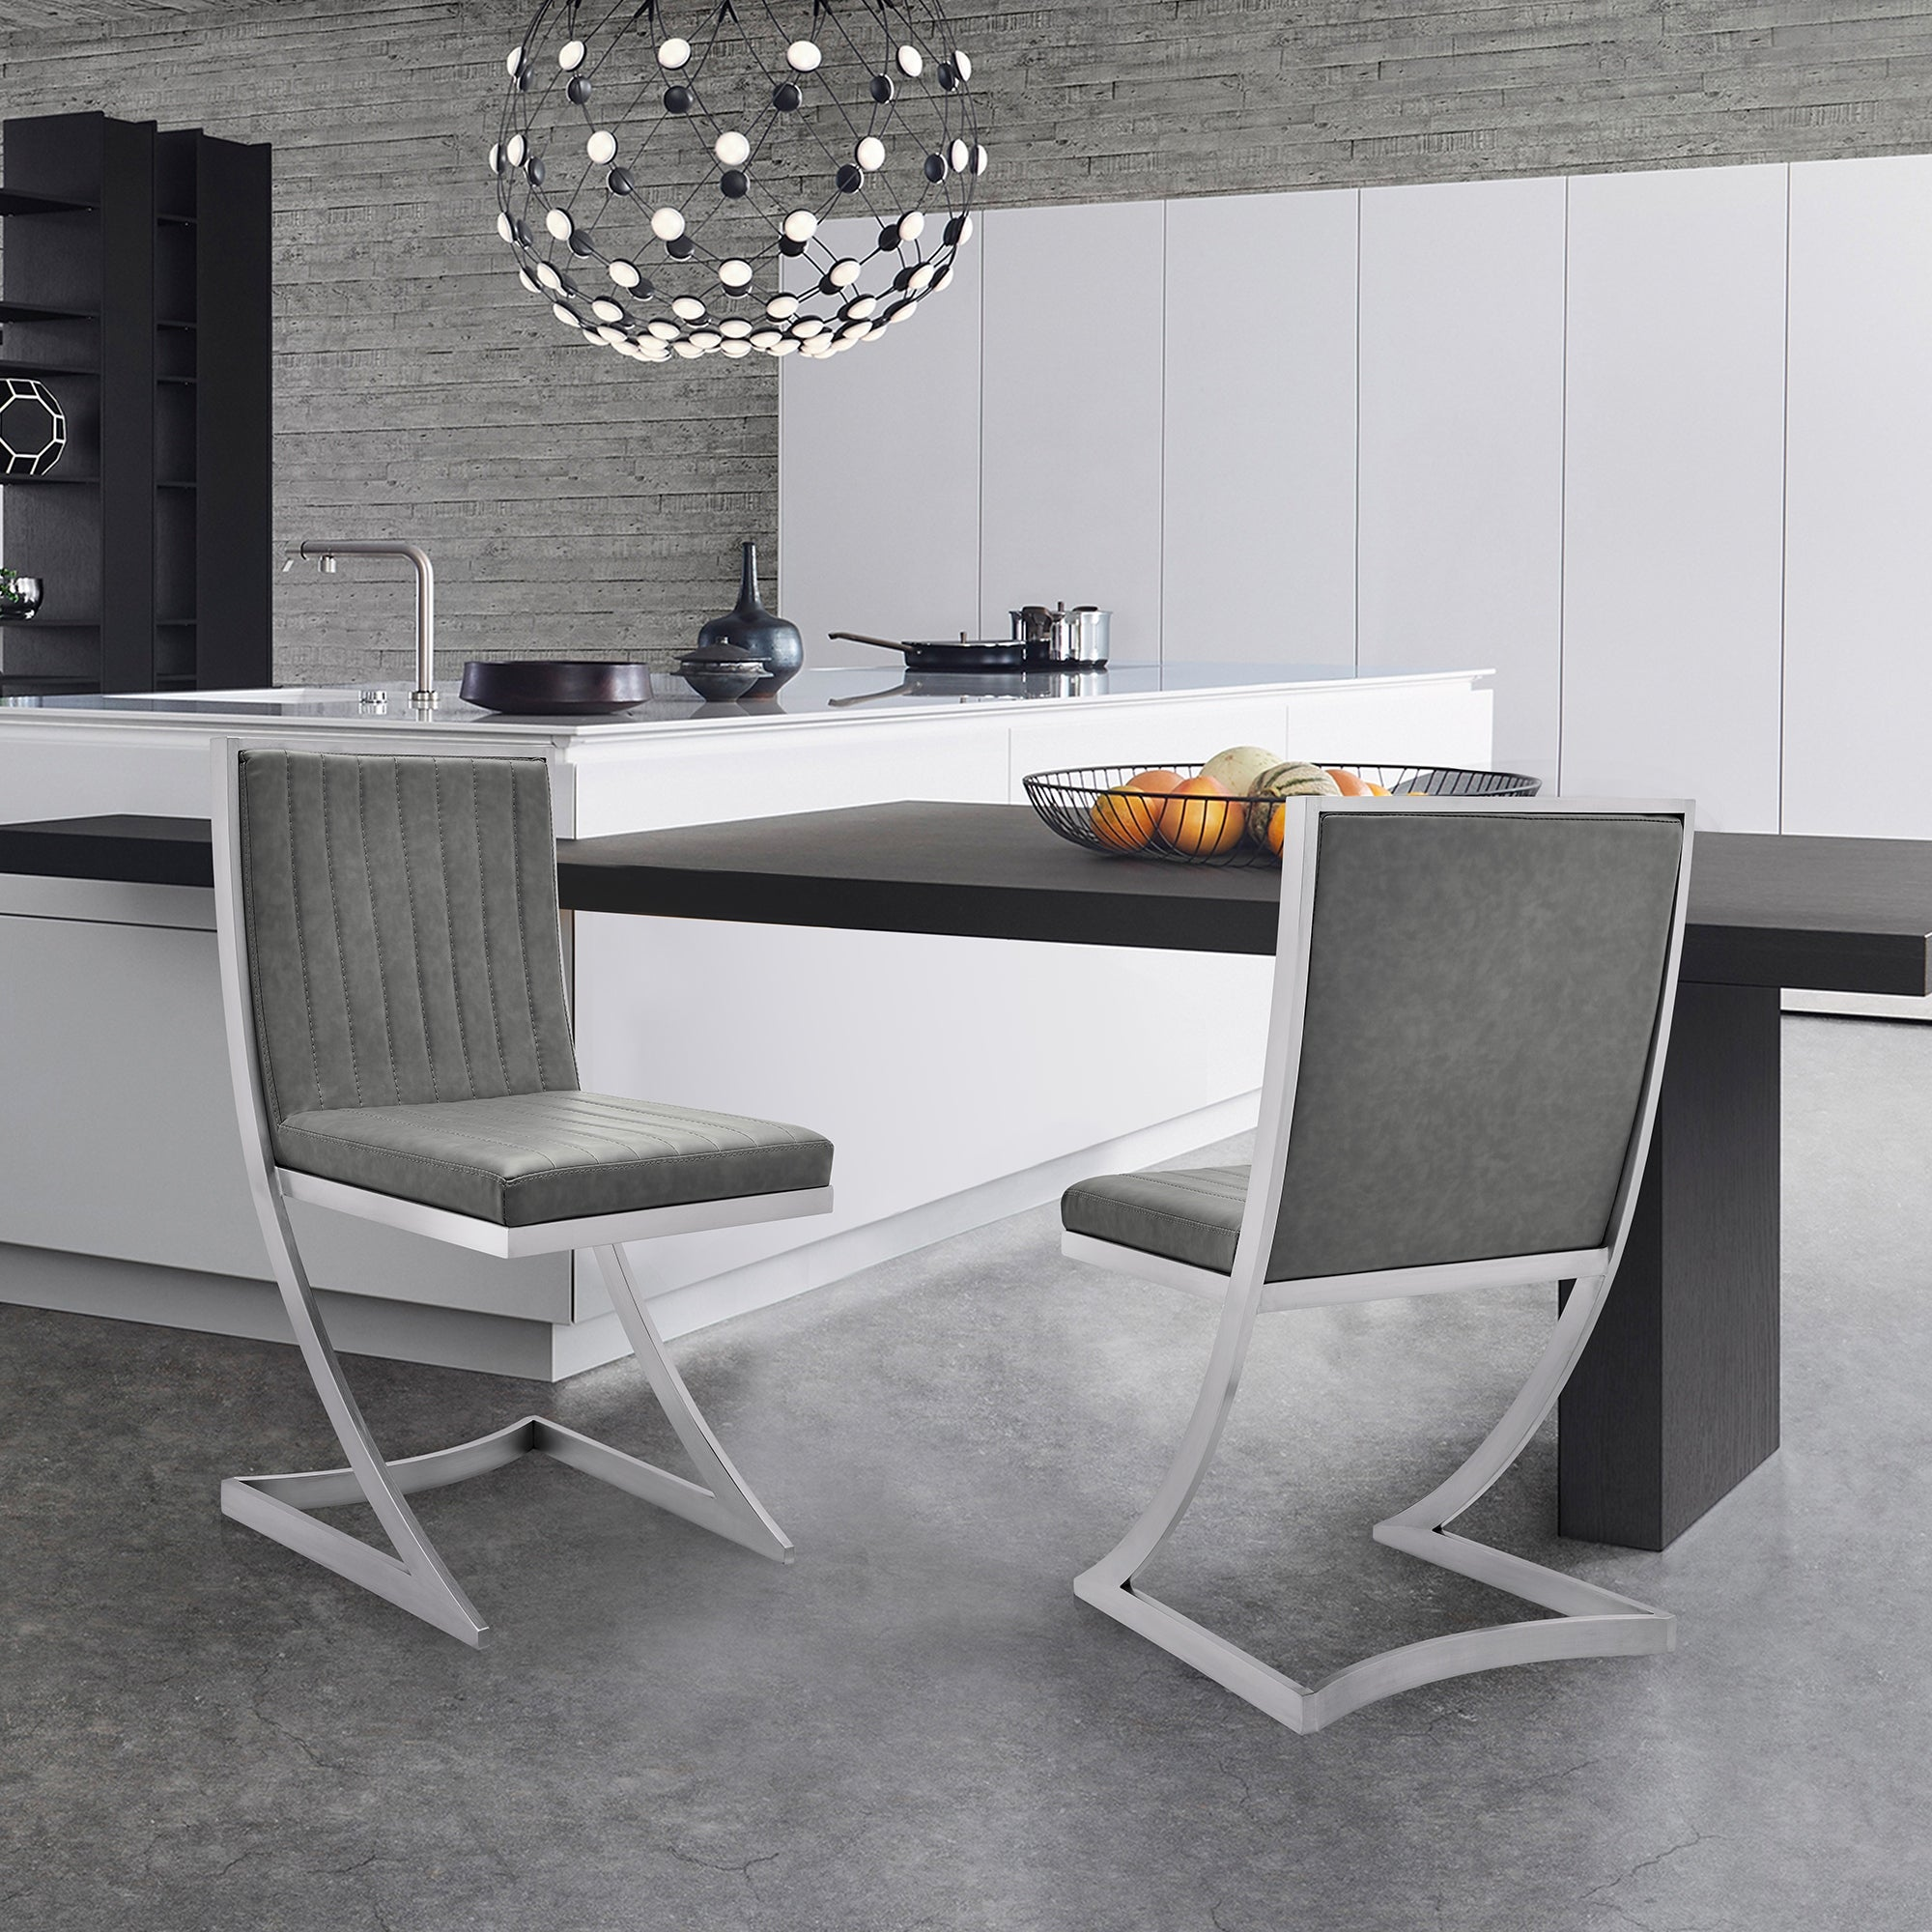 Marc Modern Faux Leather And Brushed Stainless Steel Dining Room Chairs Set Of 2 On Sale Overstock 32598296